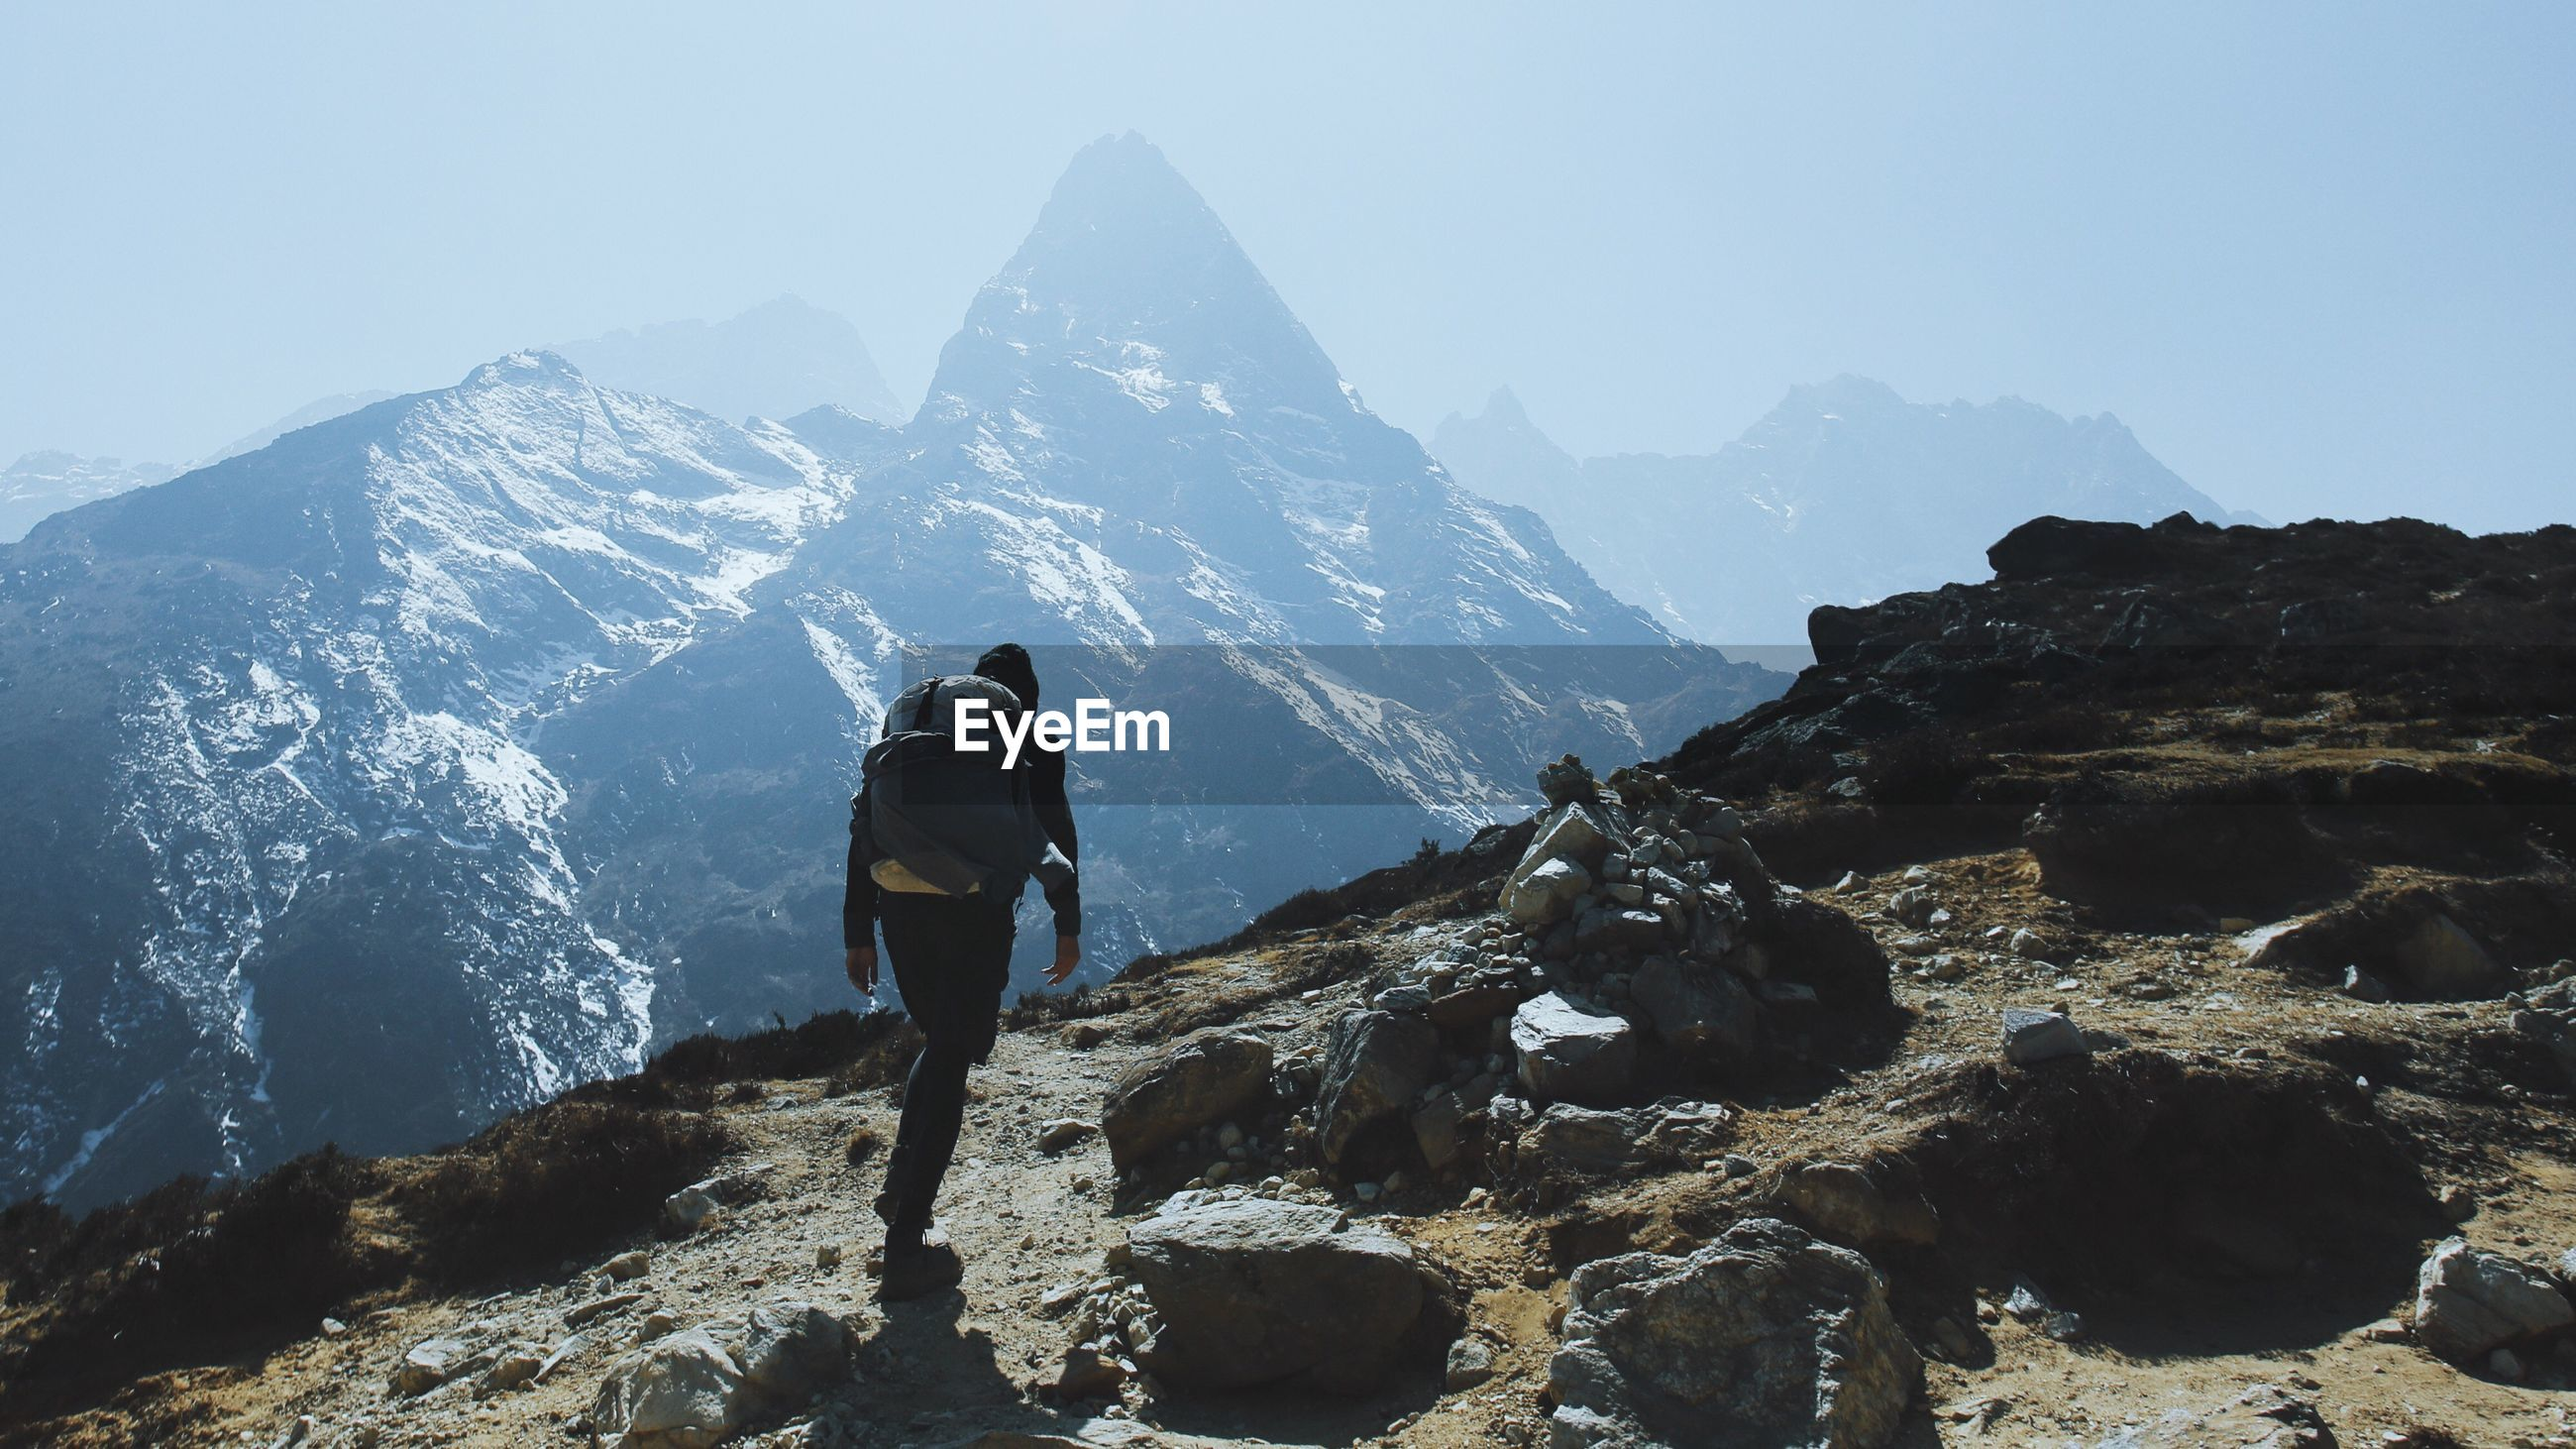 MAN STANDING ON ROCKY MOUNTAIN